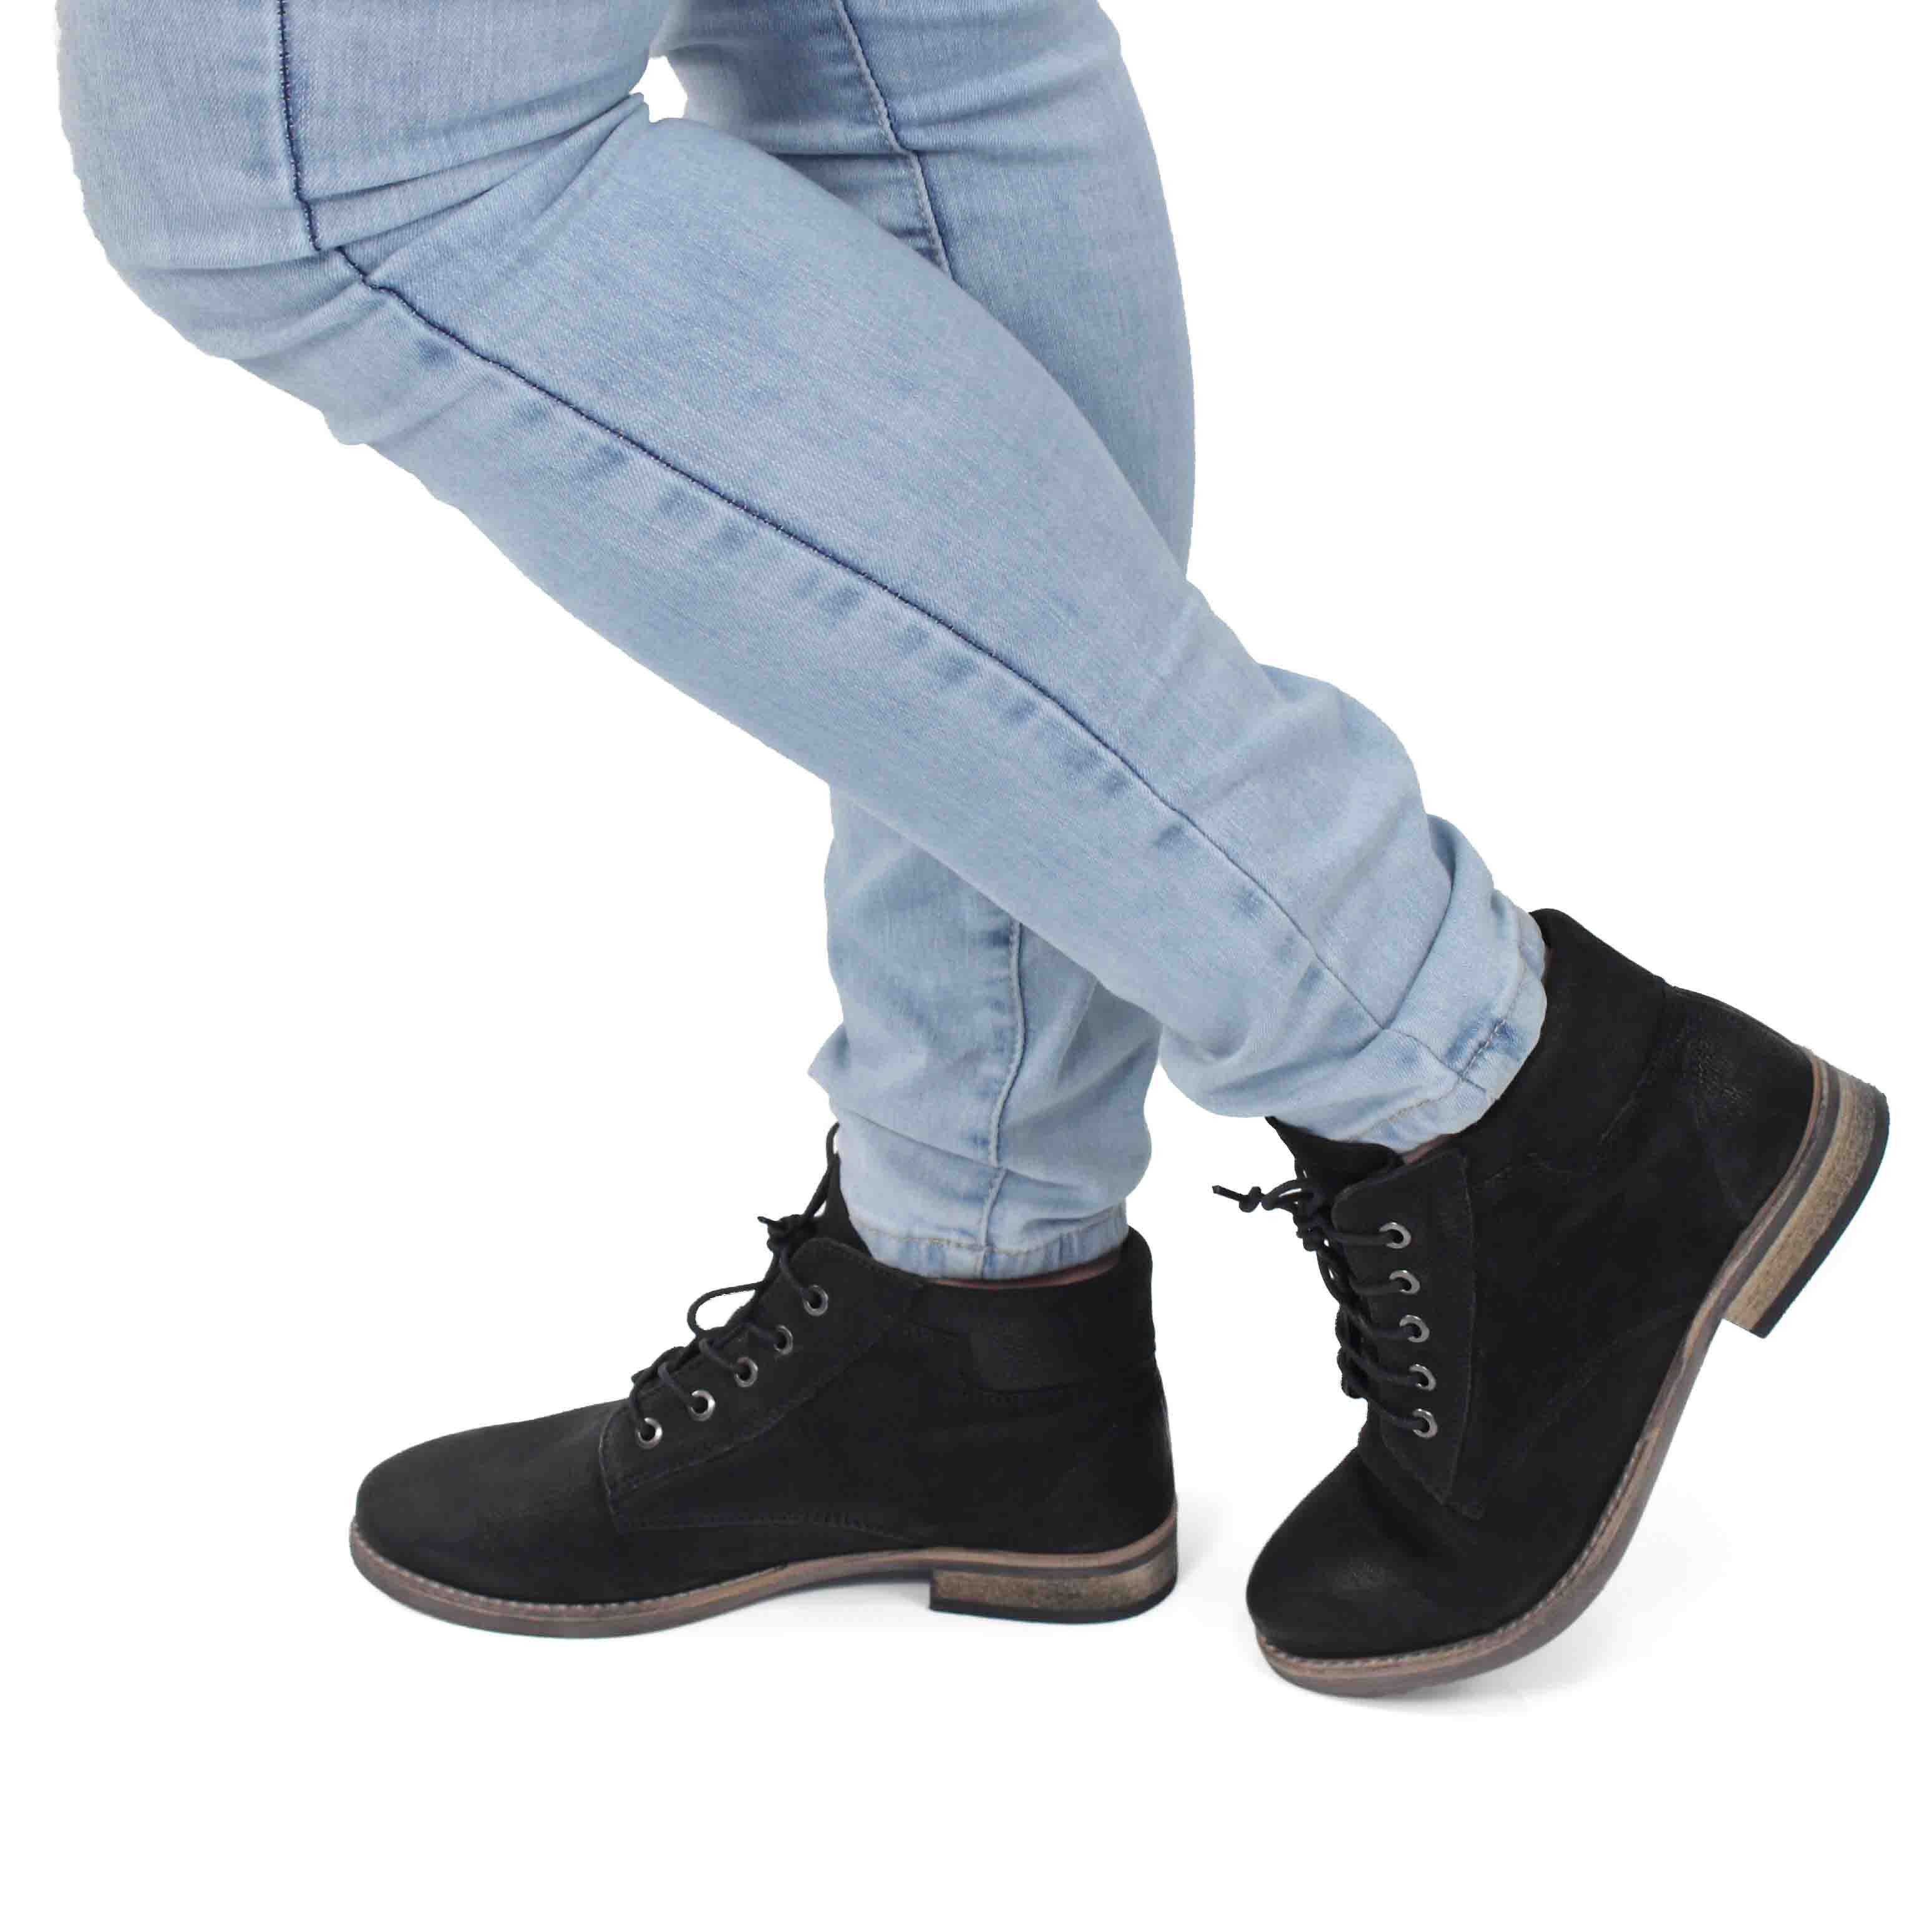 Maddison Womens Lois Lace Up Booties